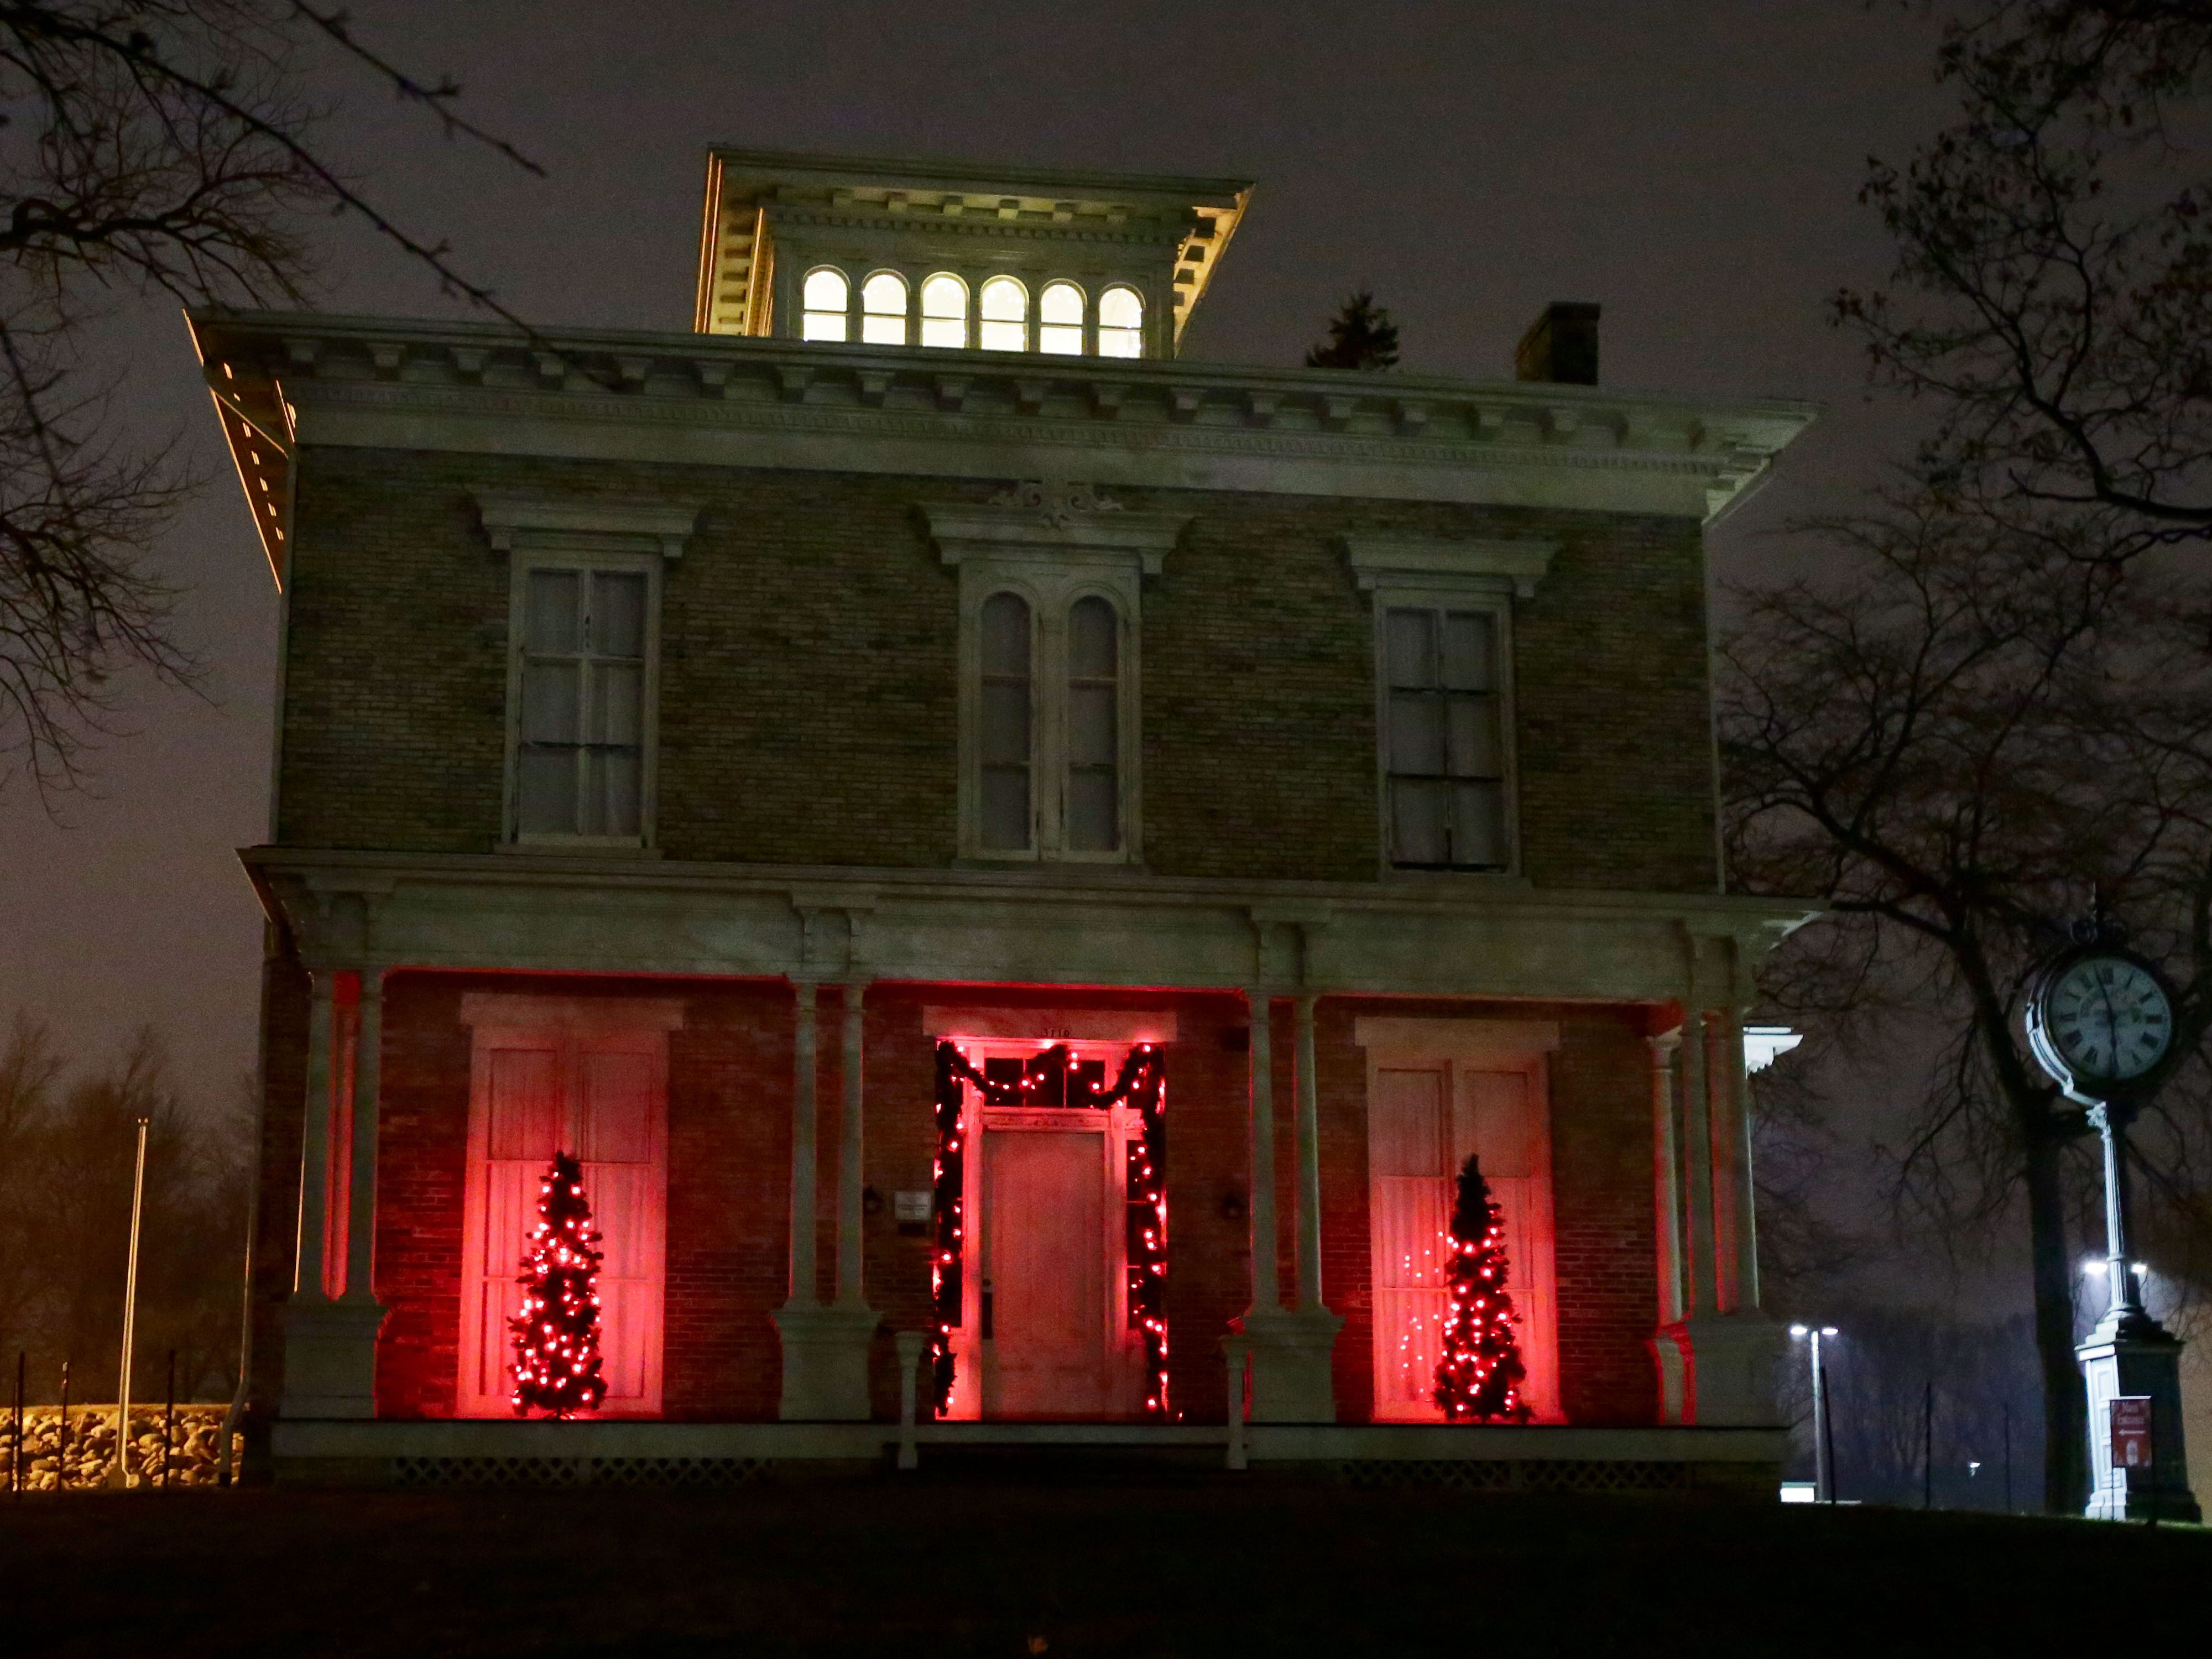 The David Taylor House on the grounds of the Sheboygan County Historical Museum is aglow with color, Wednesday, December 12, 2018, in Sheboygan, Wis.